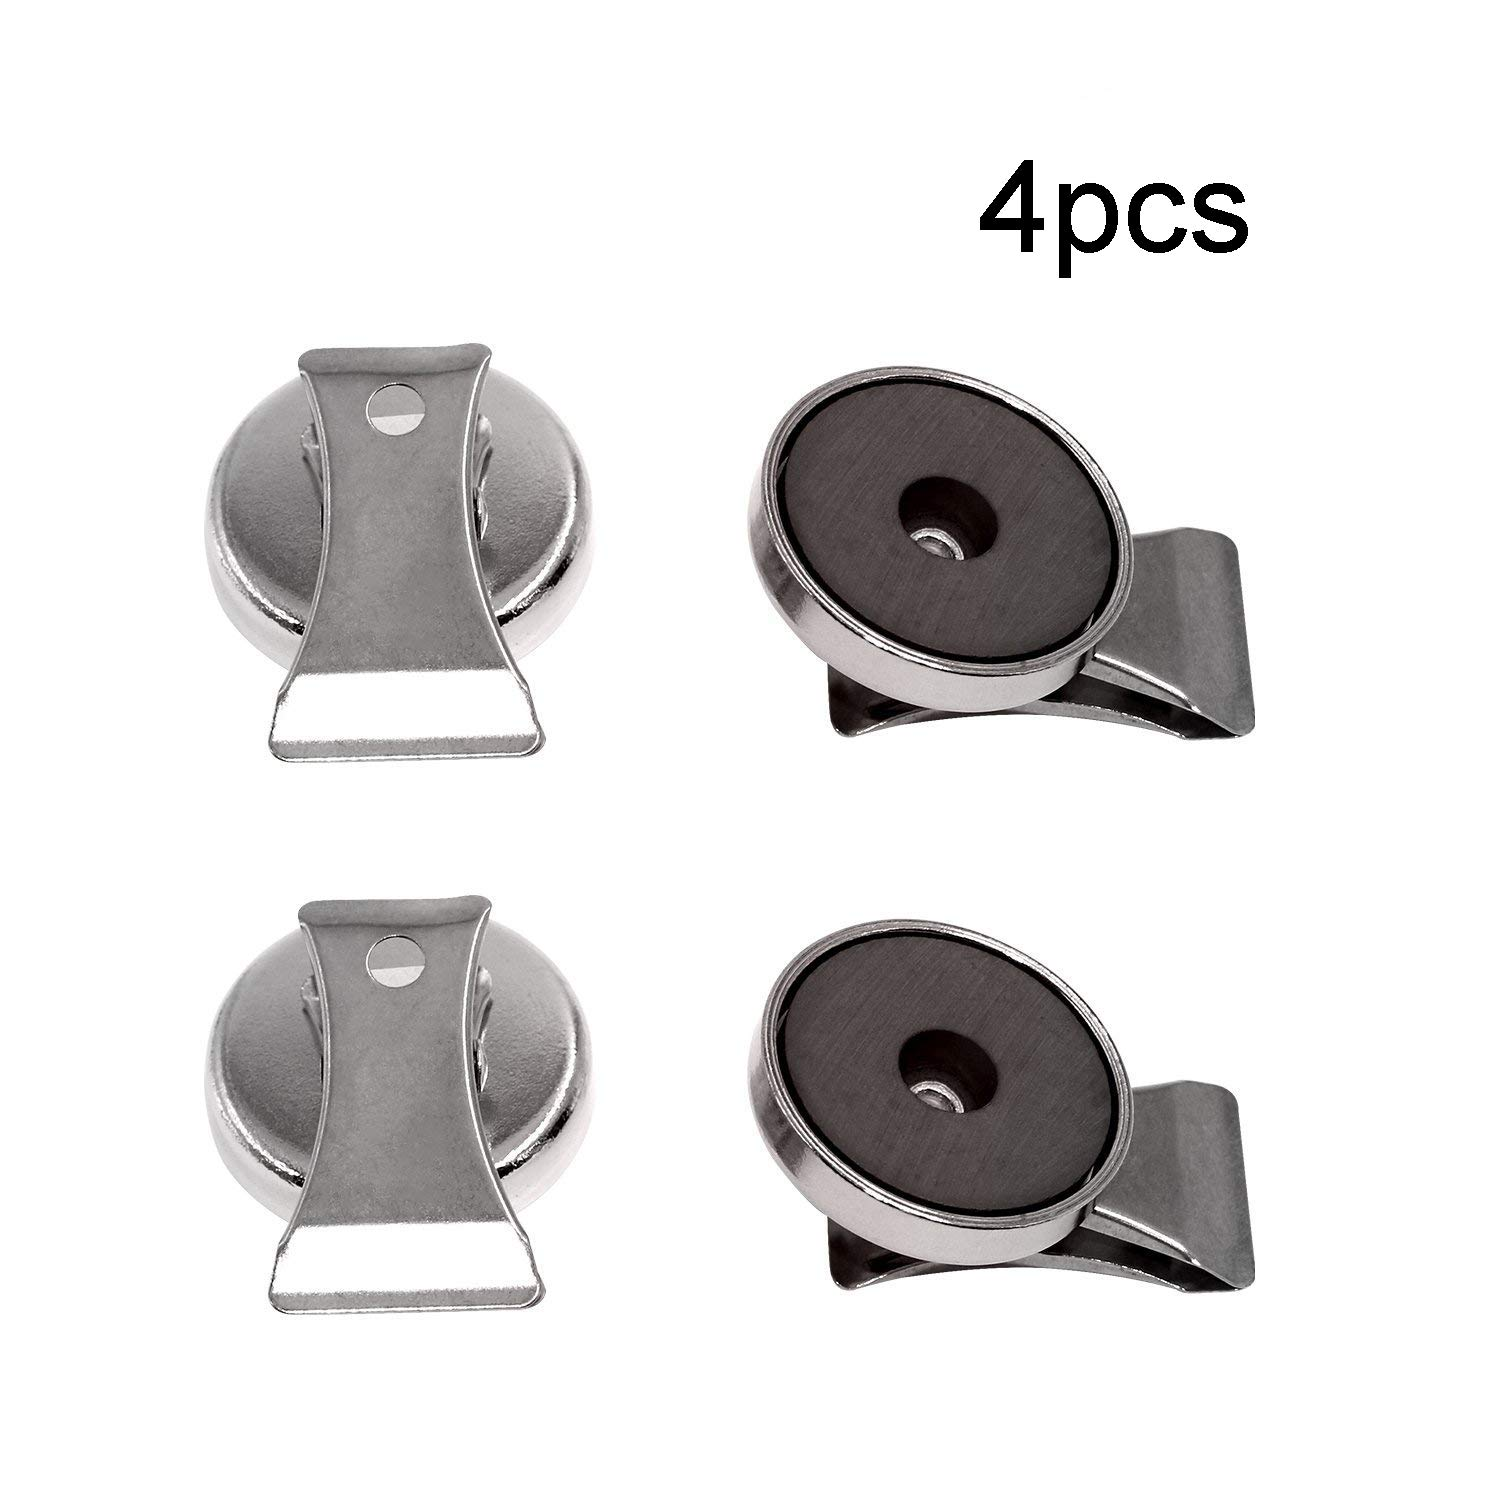 NSpole Heavy Duty Neodymium Magnetic Clip Clamp Refrigerator Magnet (15lb(4 pack)) by NSpole